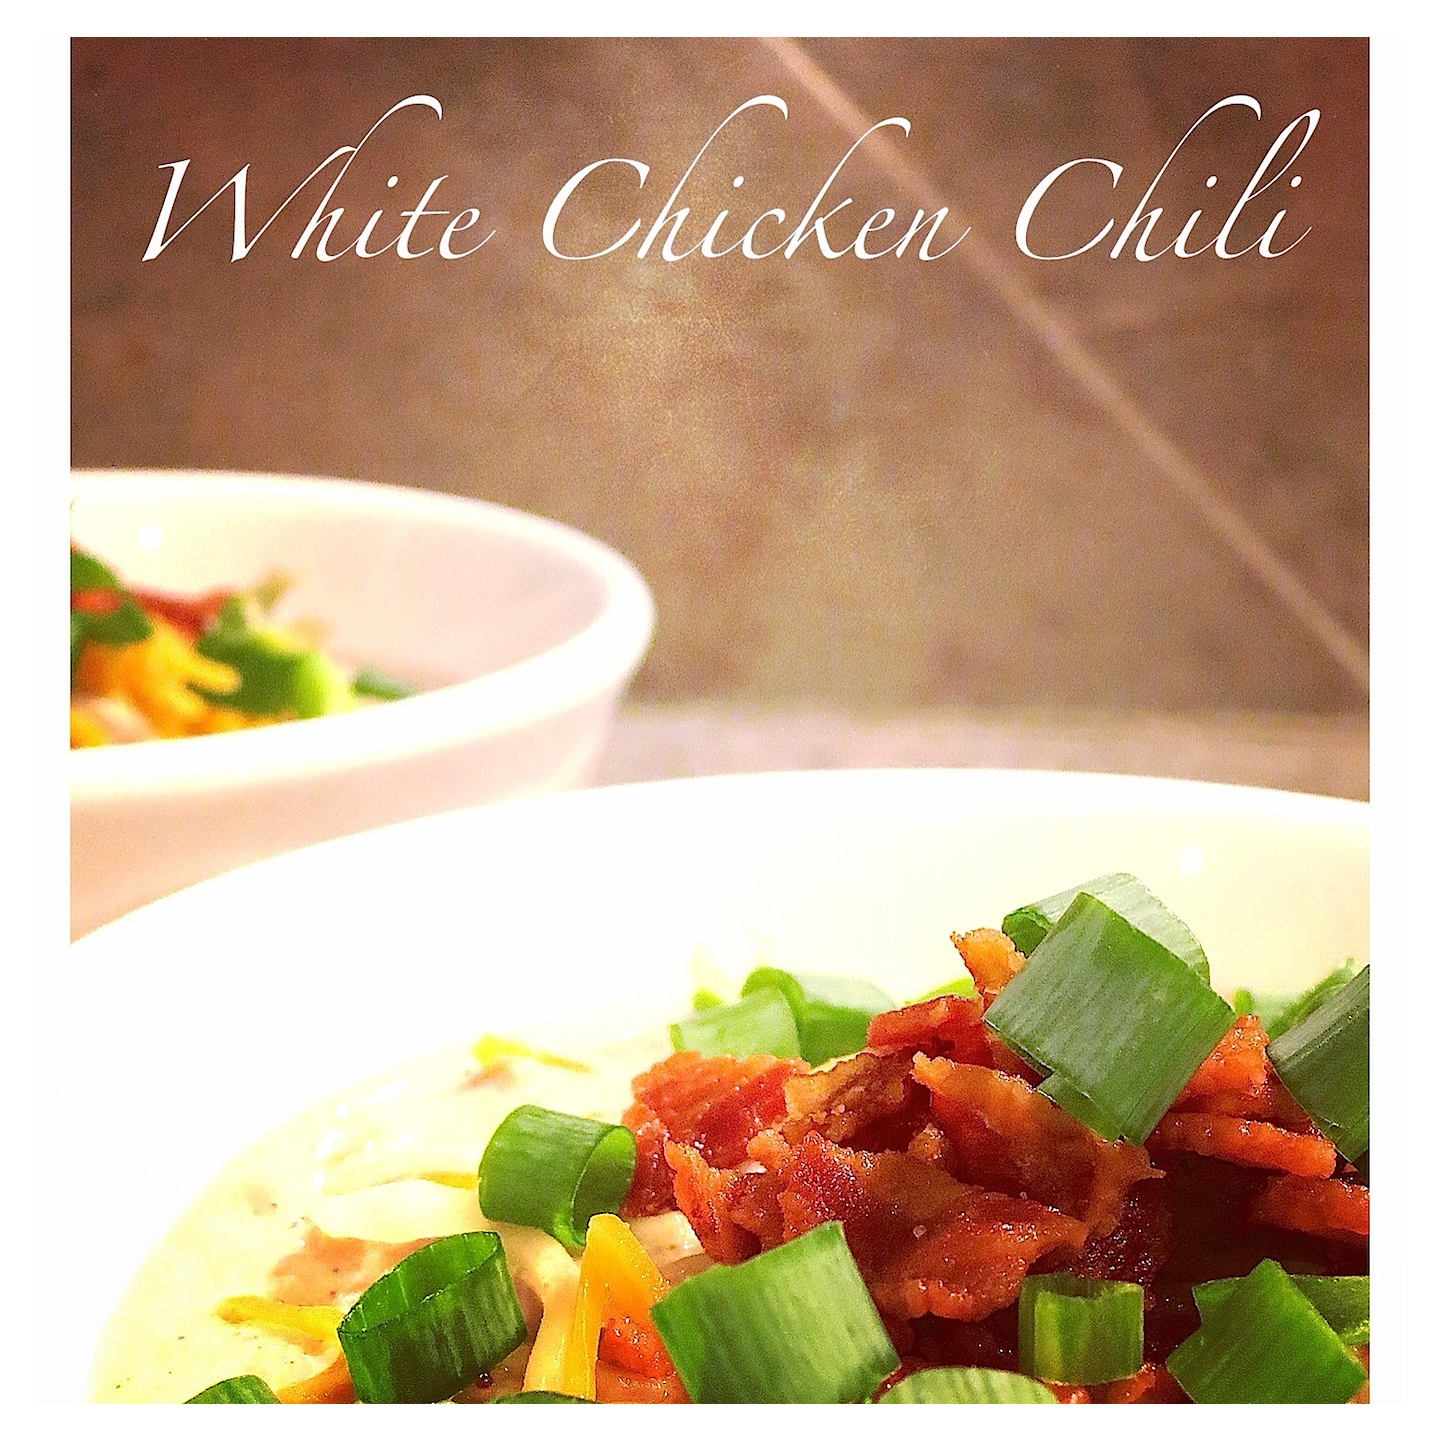 Perfect Recipte - Worlds Best White Chicken Chili